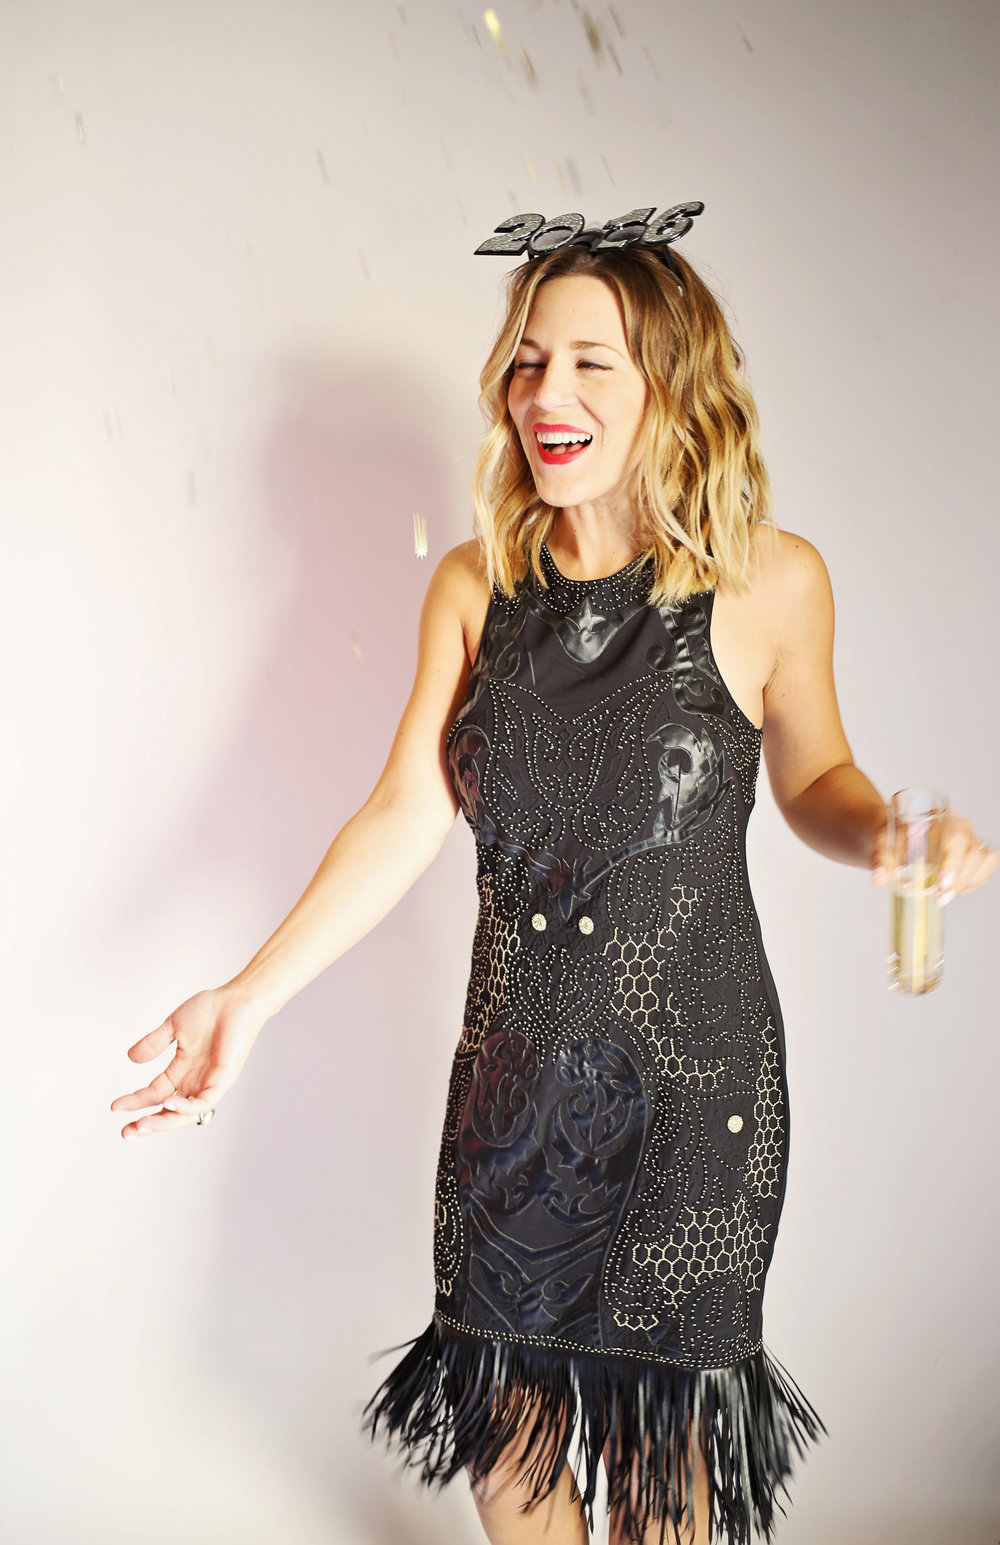 New years eve outfit by yoana baraschi 11.jpg